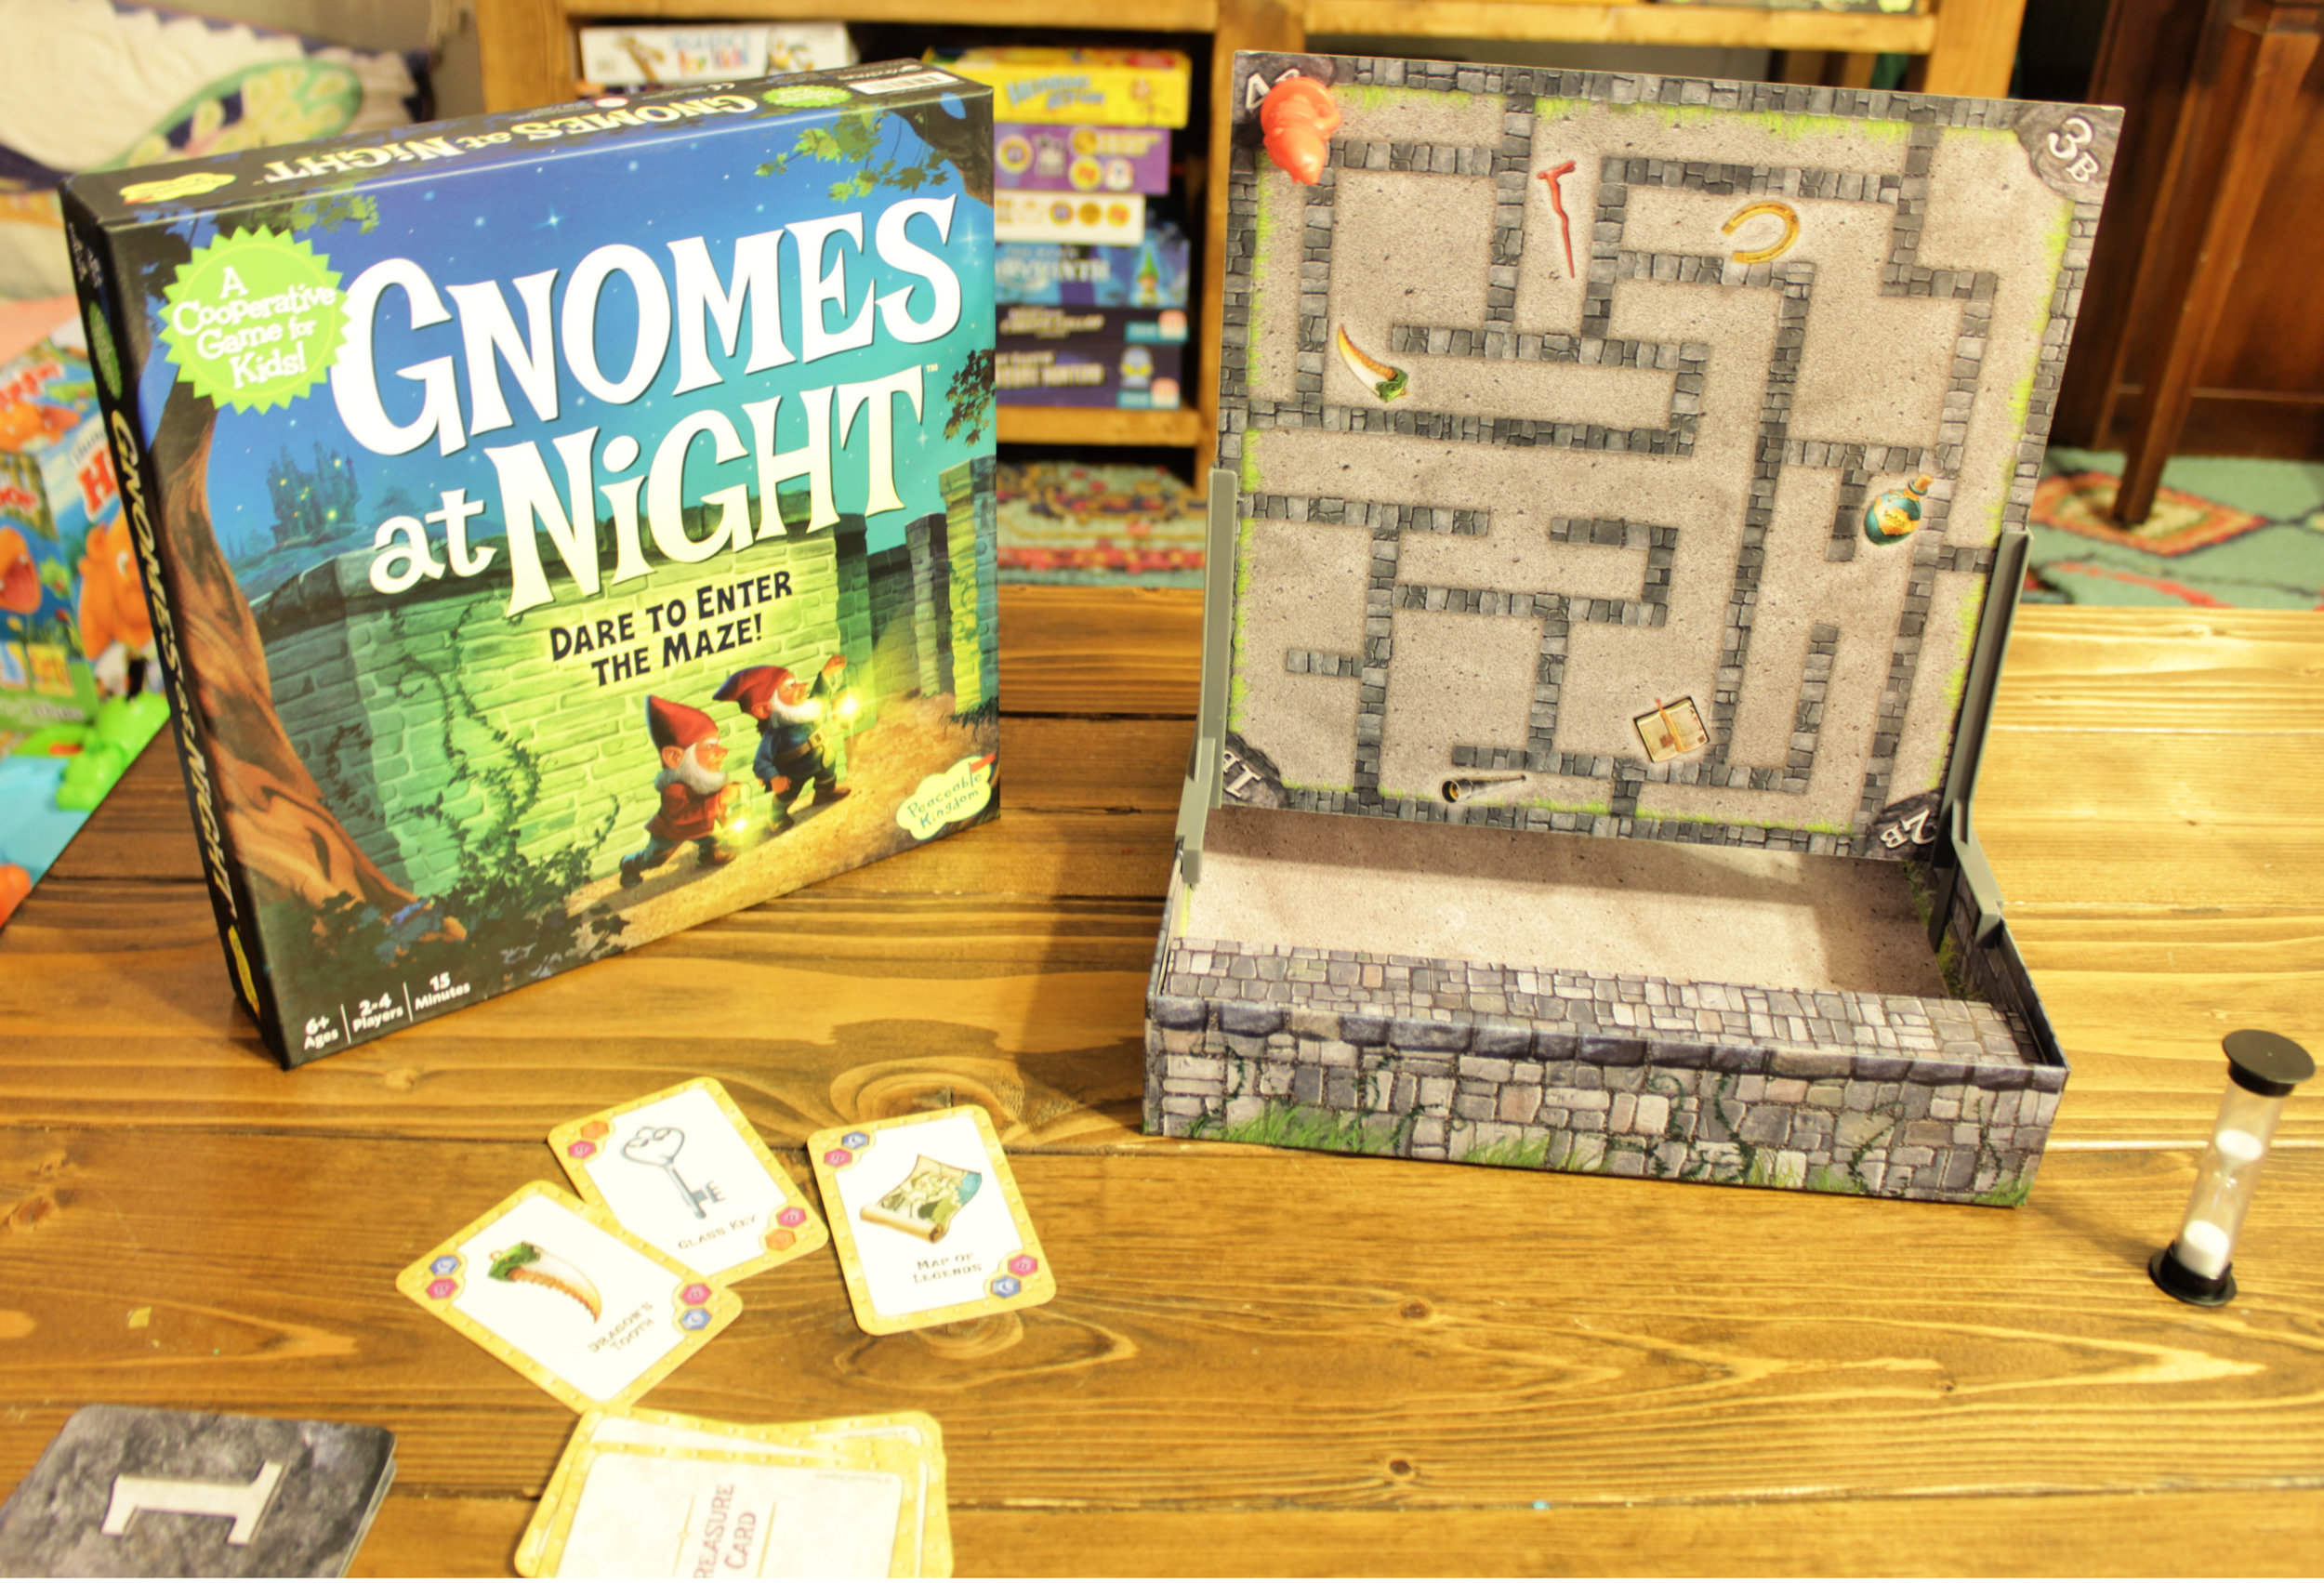 Gnomes at Night Cooperative Board Game by Peaceable Kingdom and MindWare - Family Board Games.